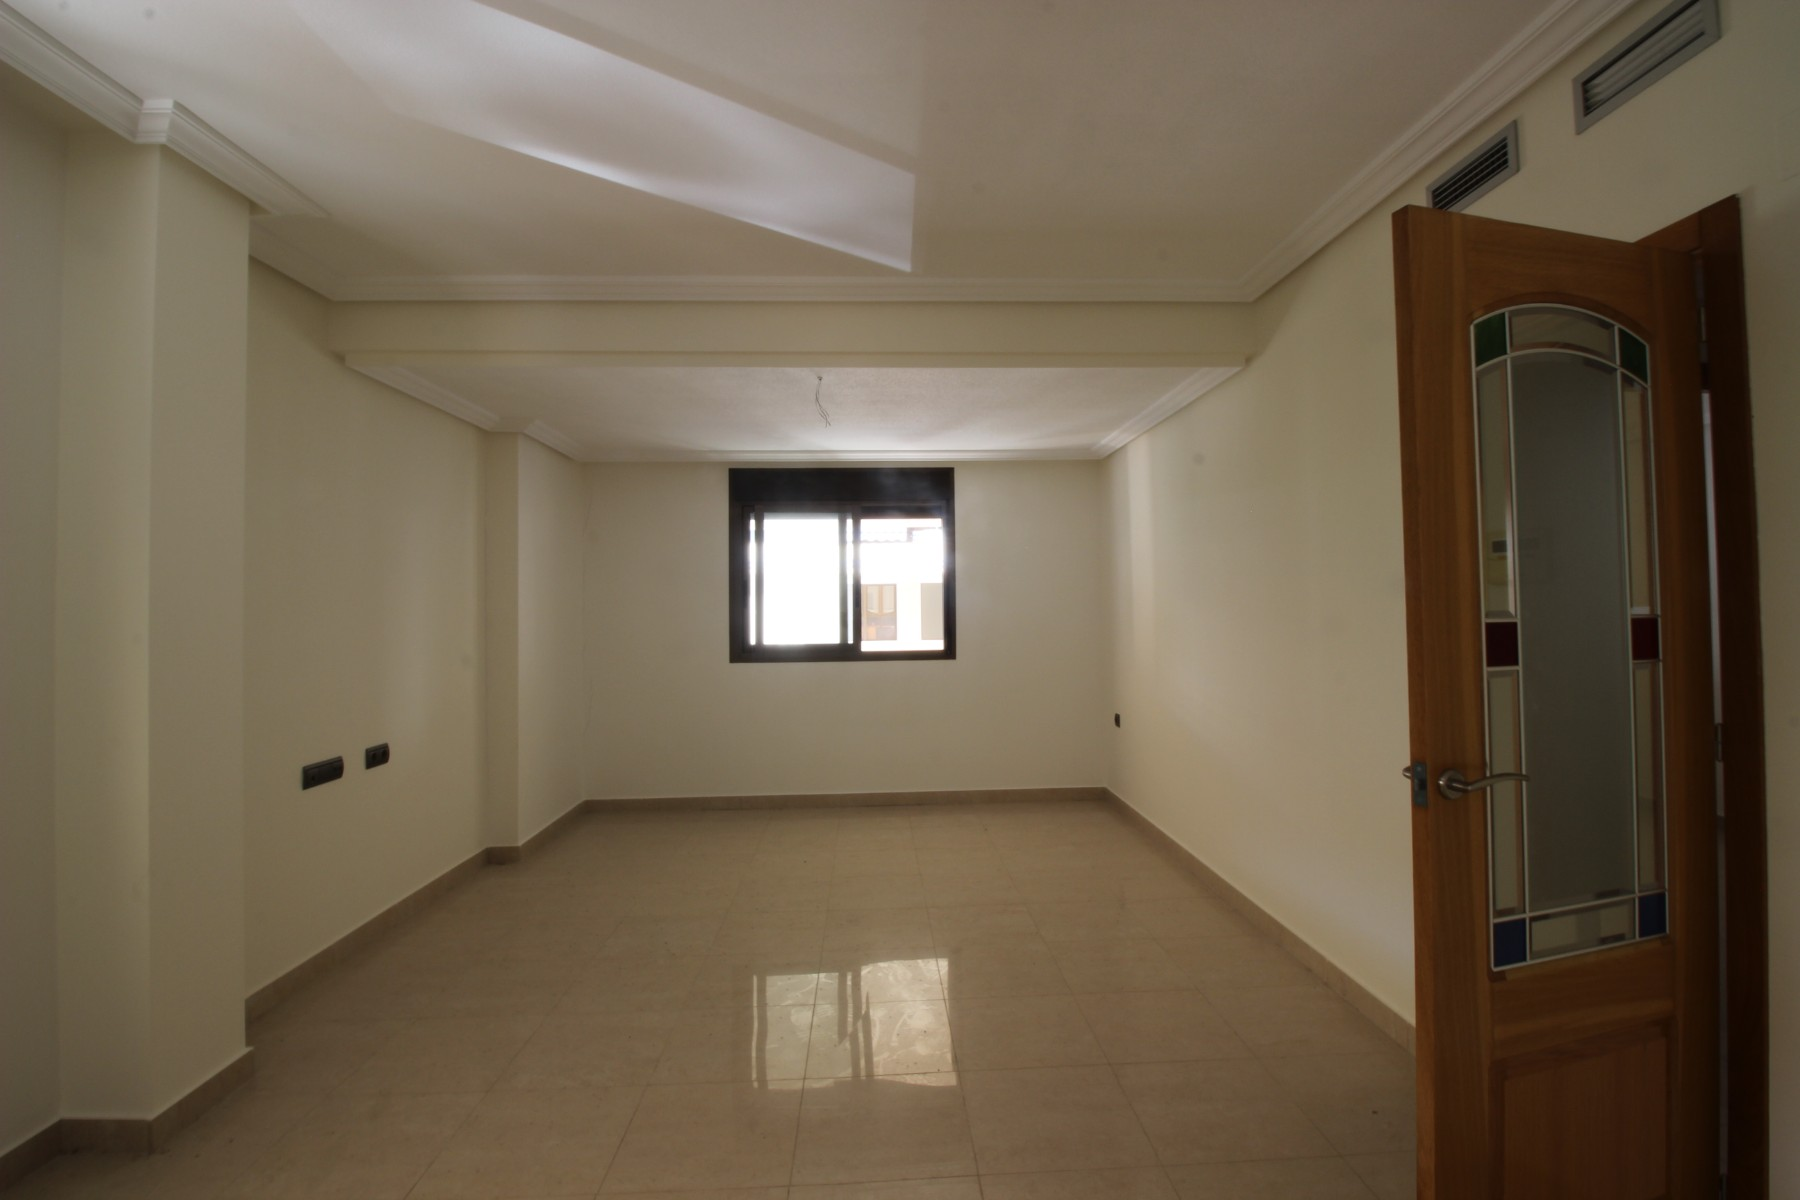 3 bedroom Apartament in Guardamar del Segura in Nexus Grupo